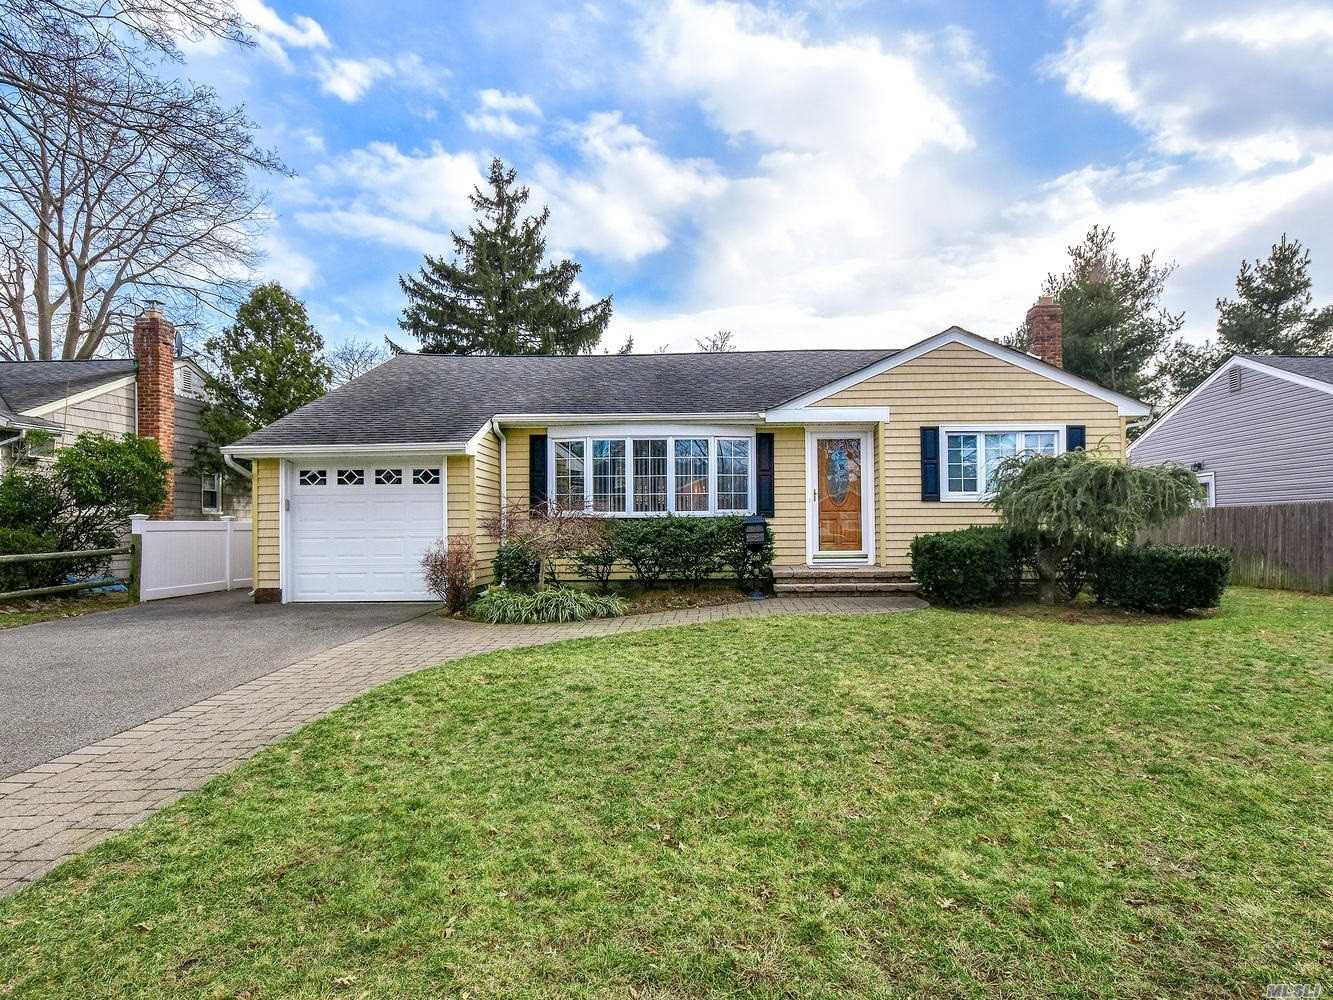 Beautiful Wantagh Woods spacious Ranch featuring large Living Room, totally decked-out Eat-in-Kitchen, stunning back yard with brick patio & hot tub area. Top location! Walk to shopping, schools, transportation.